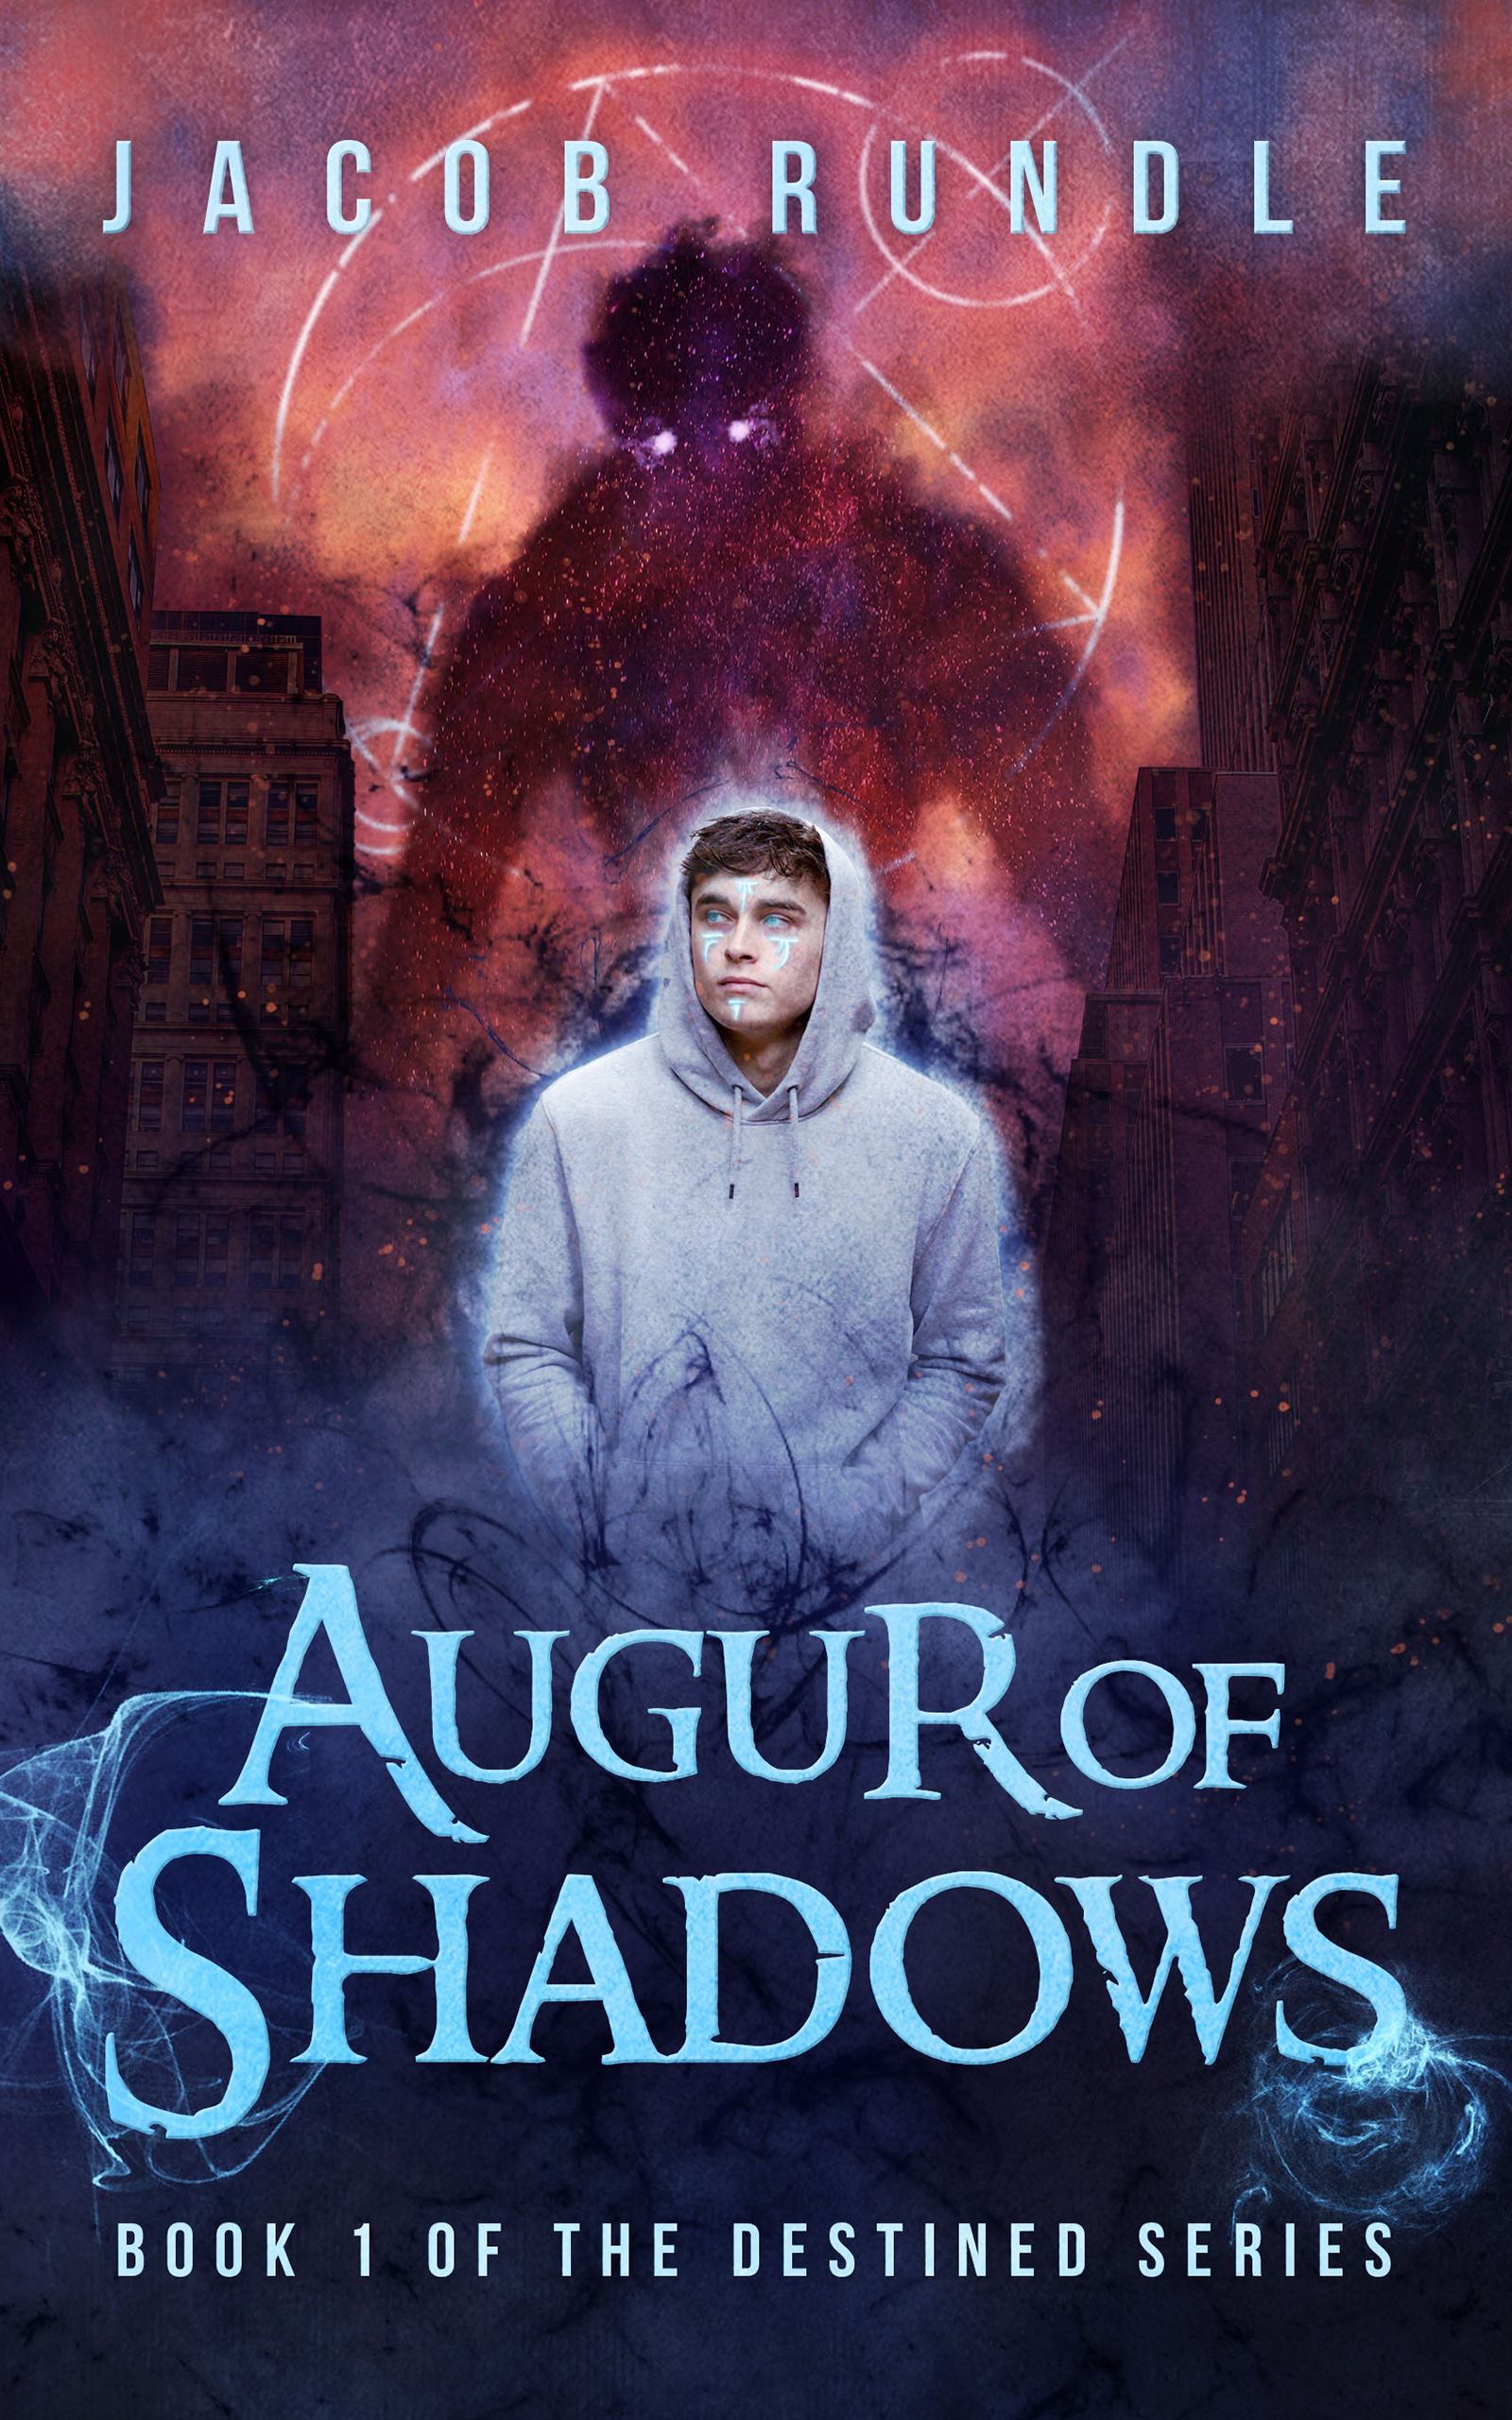 Augur of shadows: The destined series book 1 - Written by Jacob RundleReleases February 26, 2019